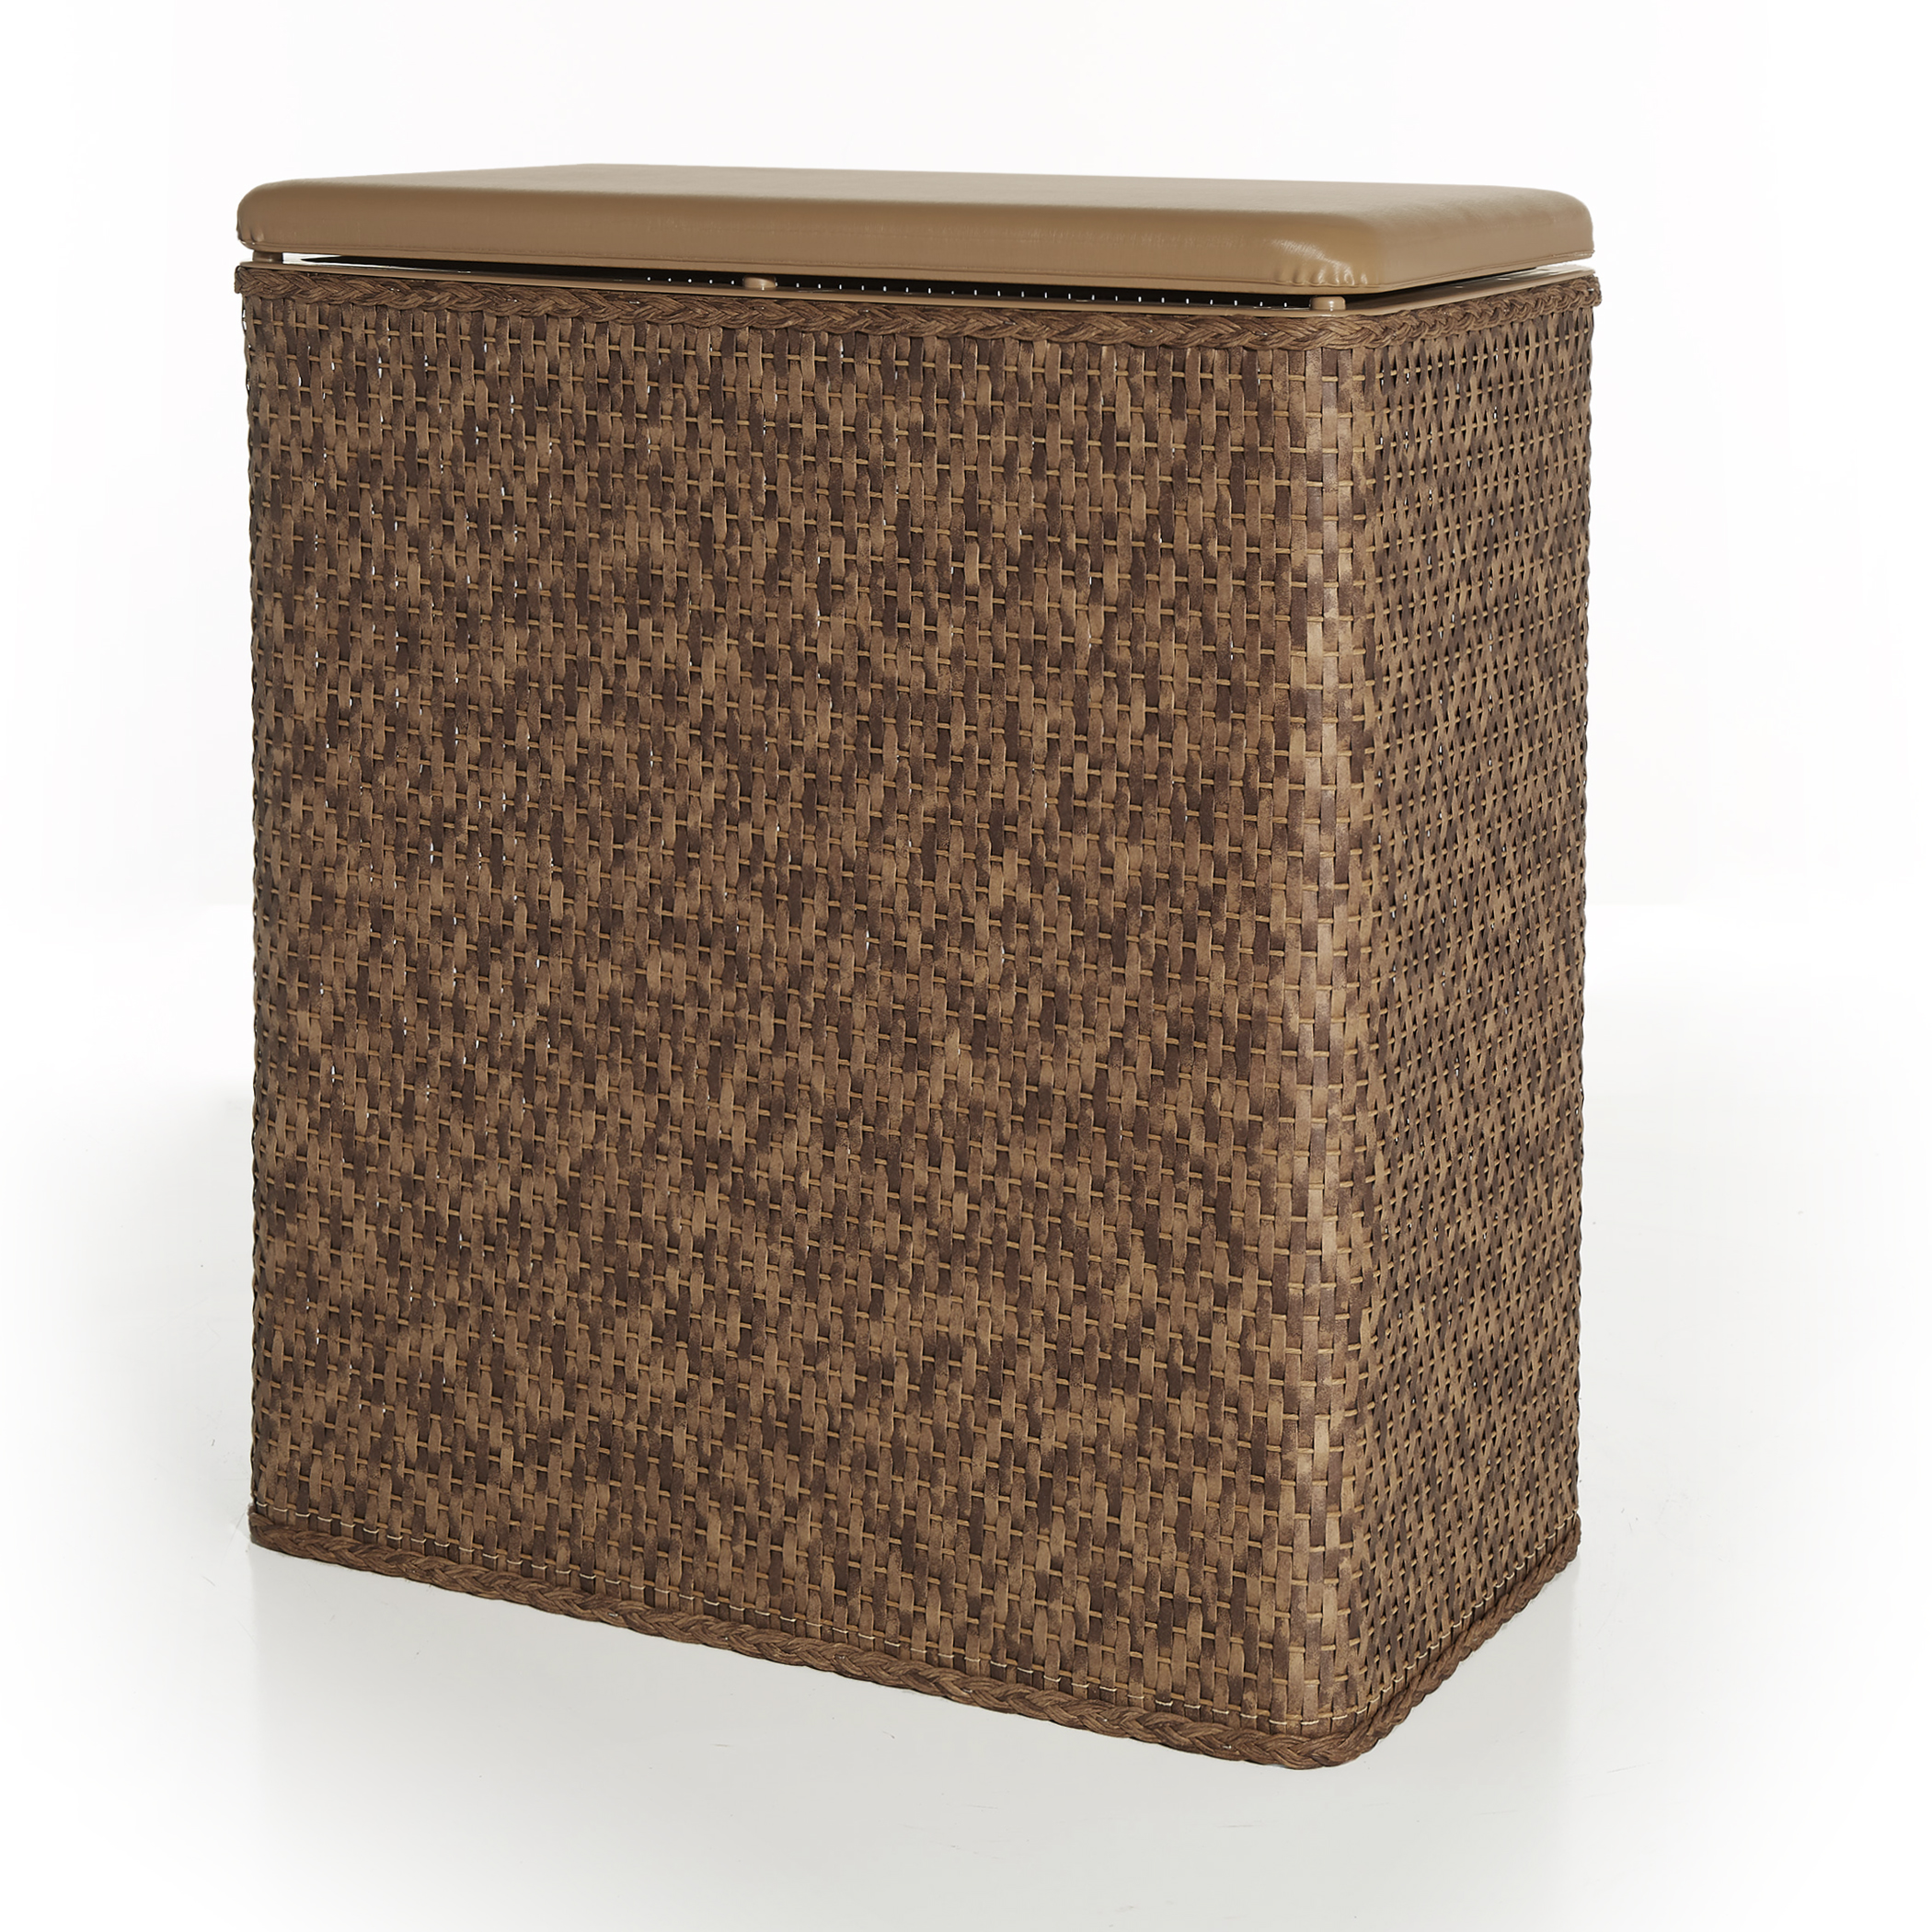 LaMont Home Harmony Collection - Upright Hamper